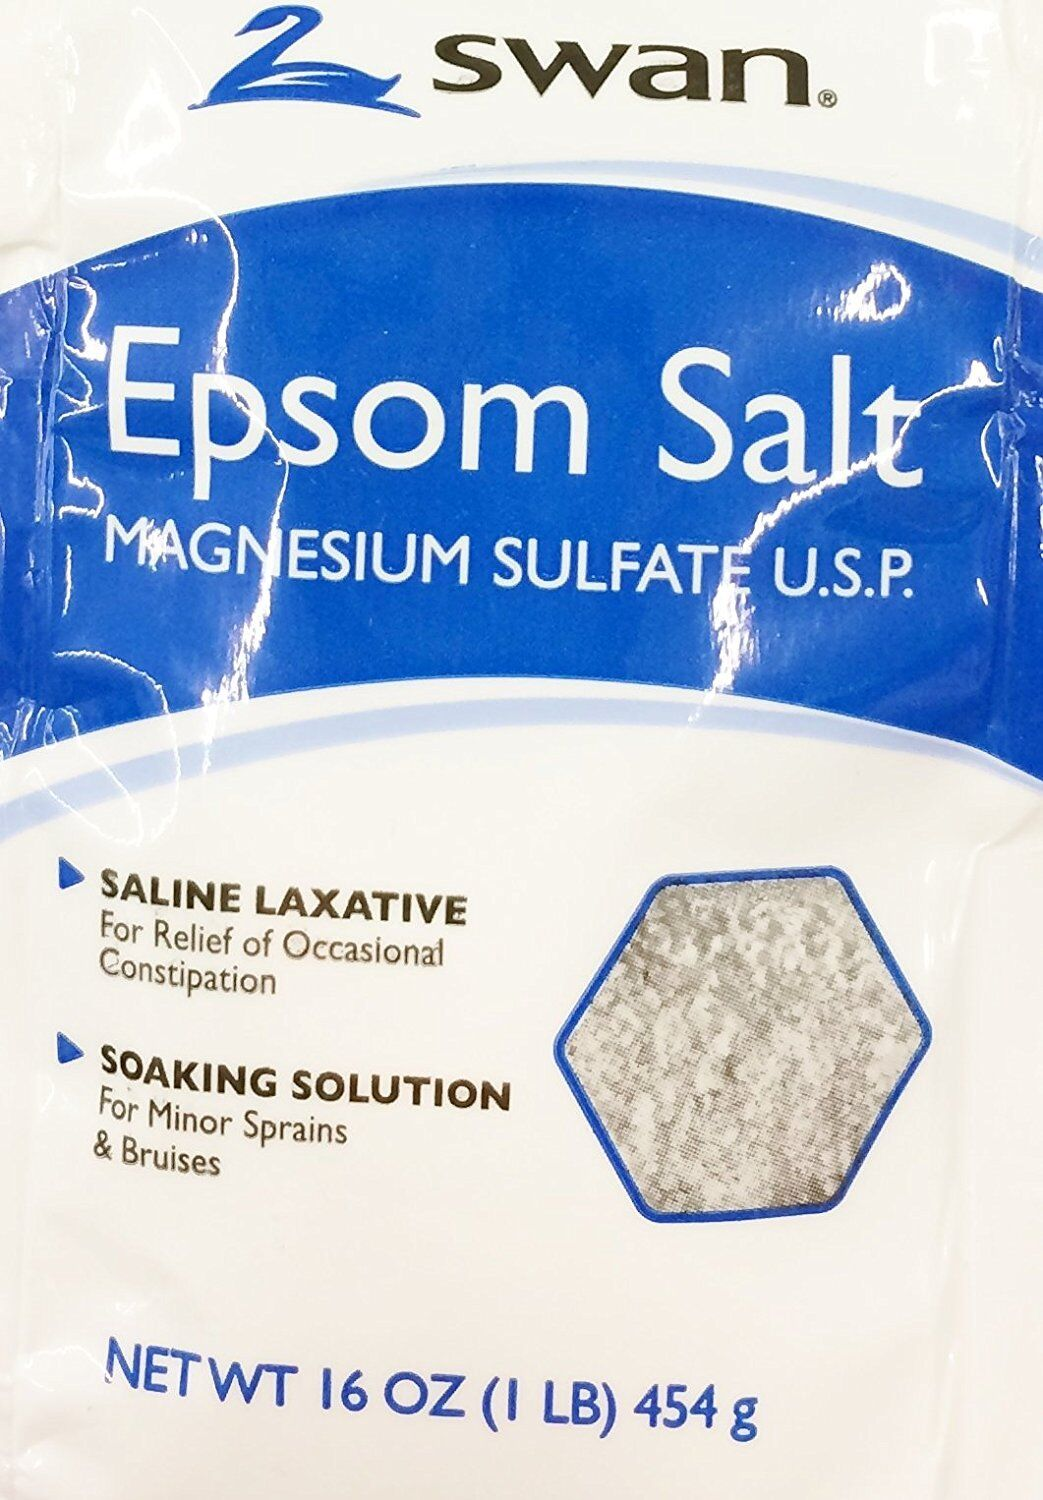 SWAN Epson Salt, Saline Laxative, Soaking Solution 16oz X...